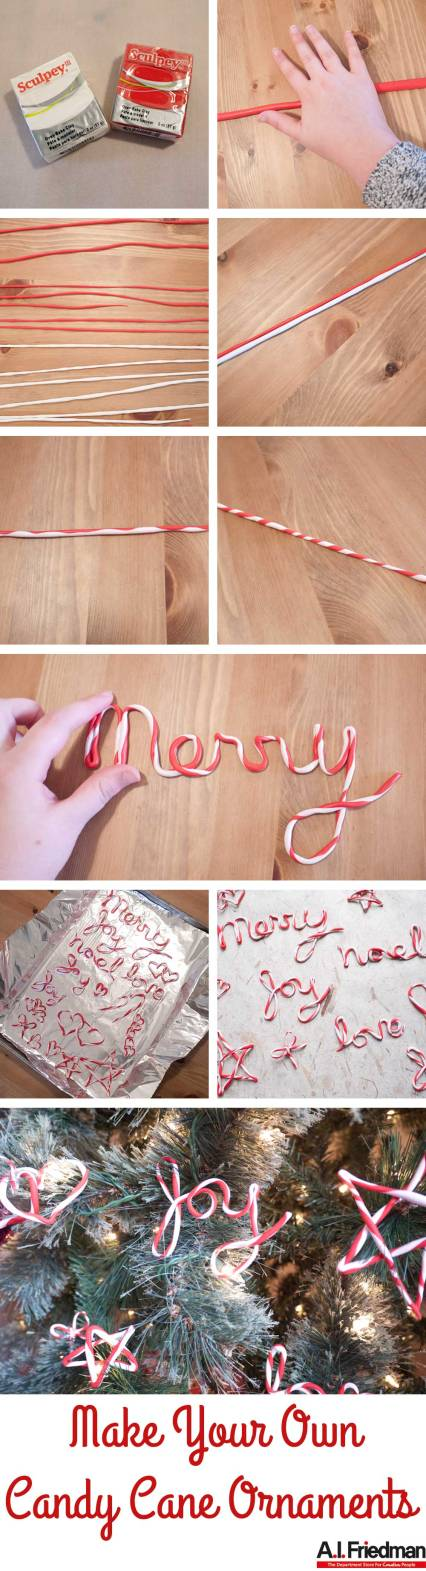 Make Your Own Candy Cane Ornaments